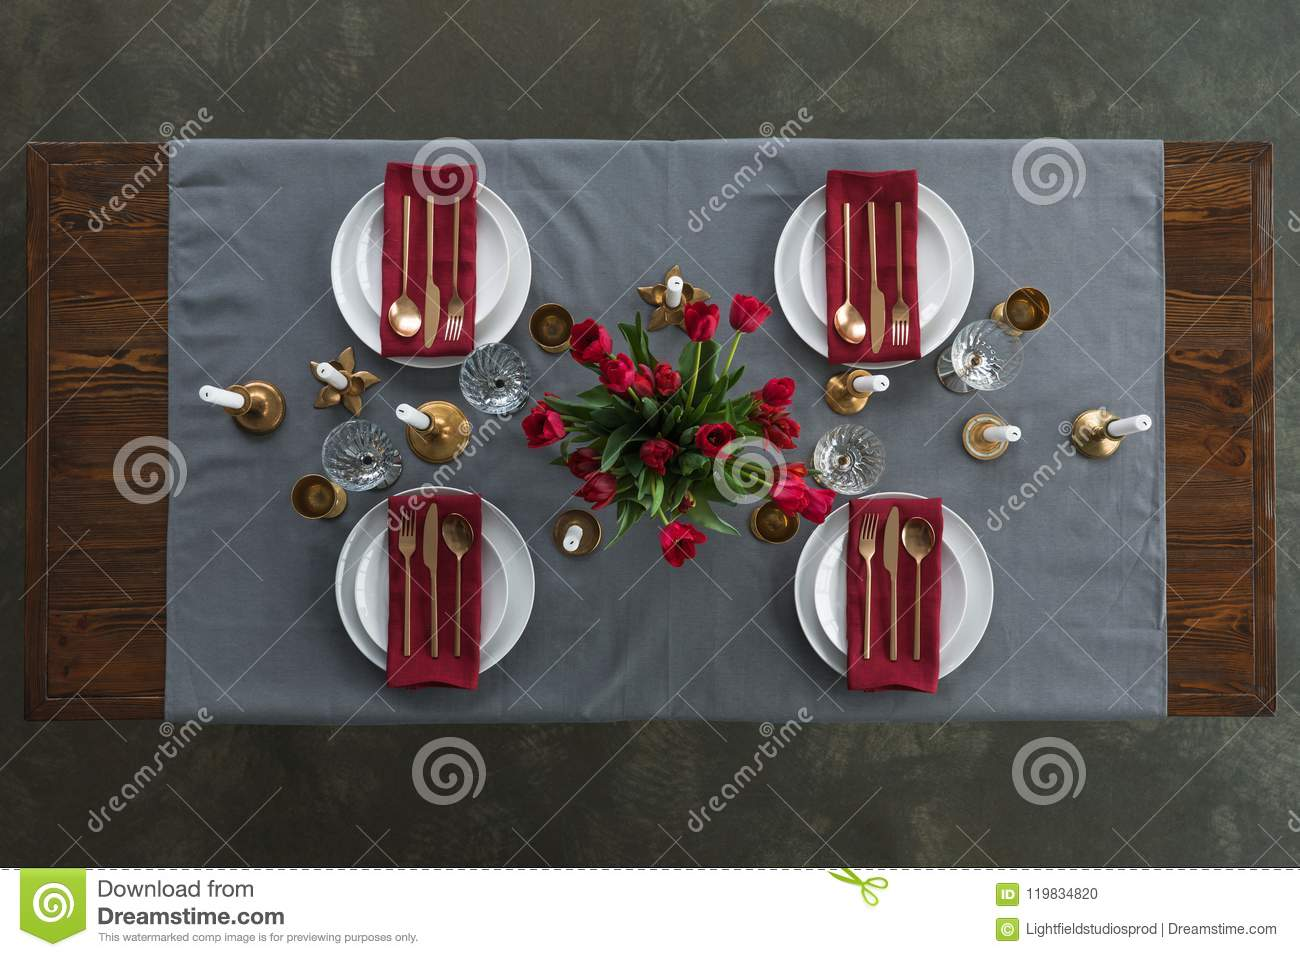 top view of rustic table setting with red tulips bouquet, tarnished cutlery, wine glasses, candles and empty plates on tabletop